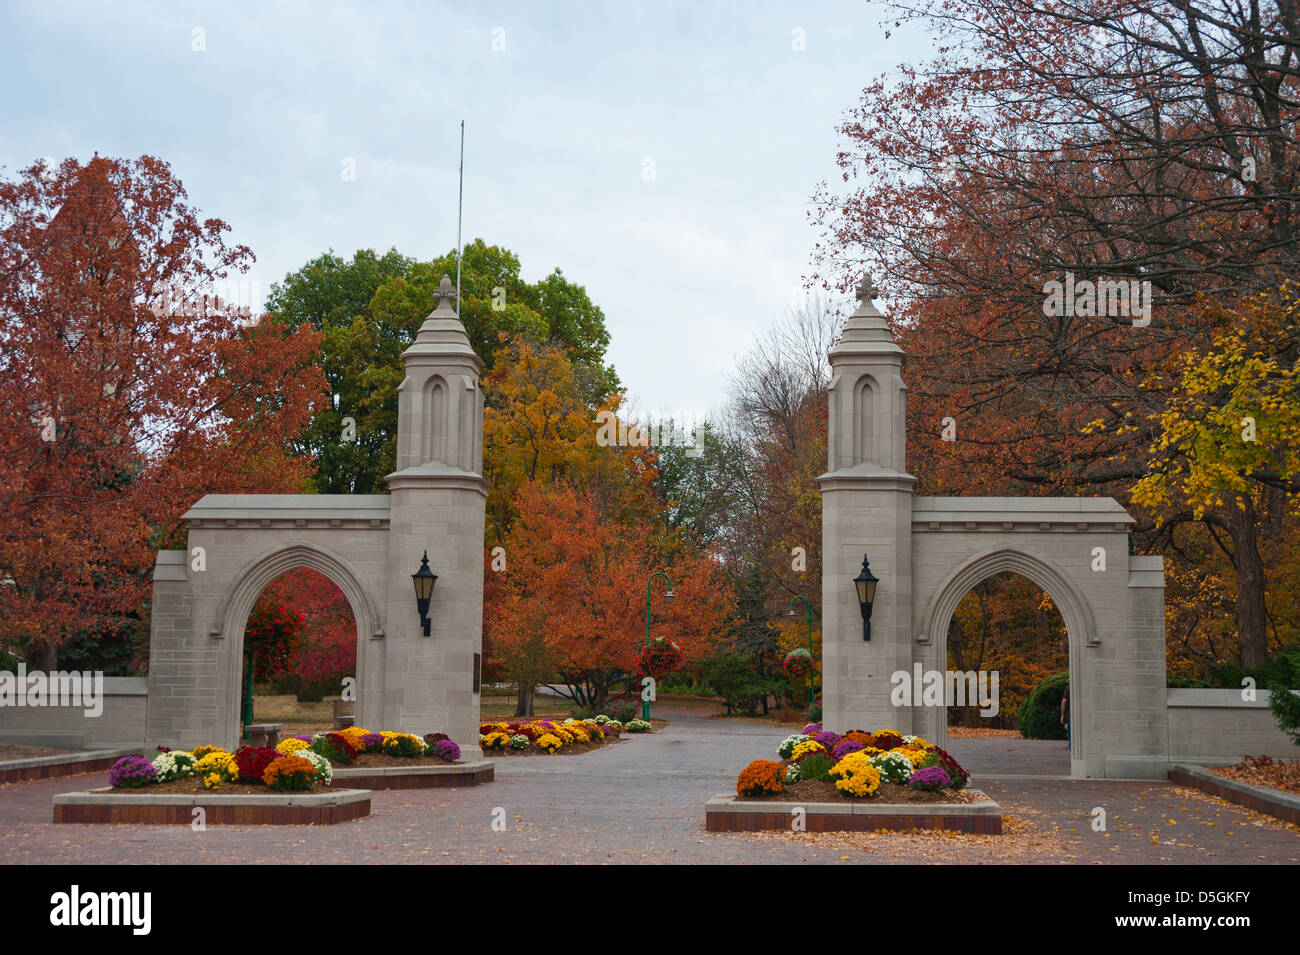 The Entrance To The Campus At Indiana University In